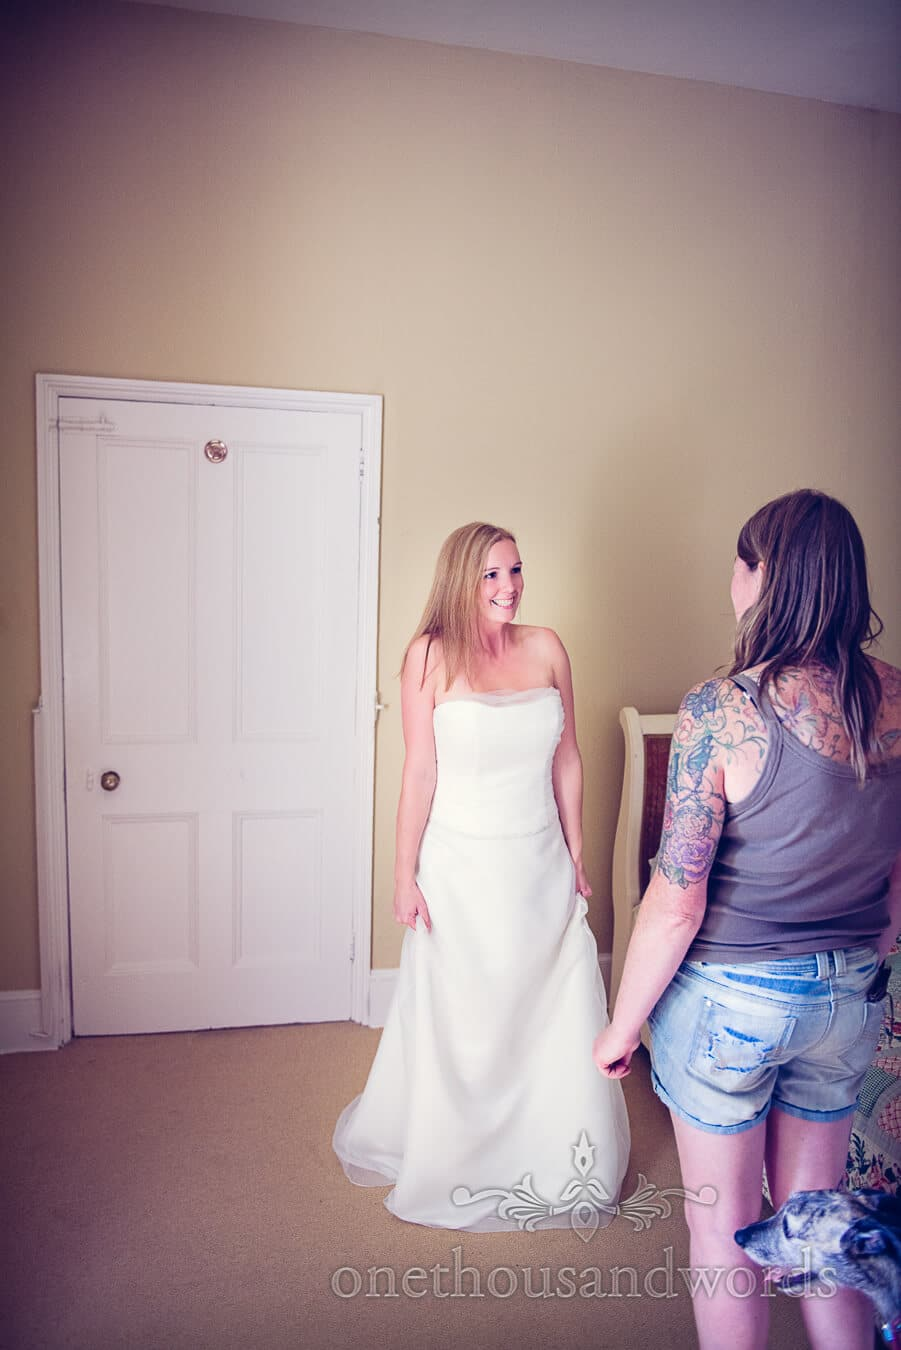 Bride in white wedding dress excited to see her friend on wedding morning